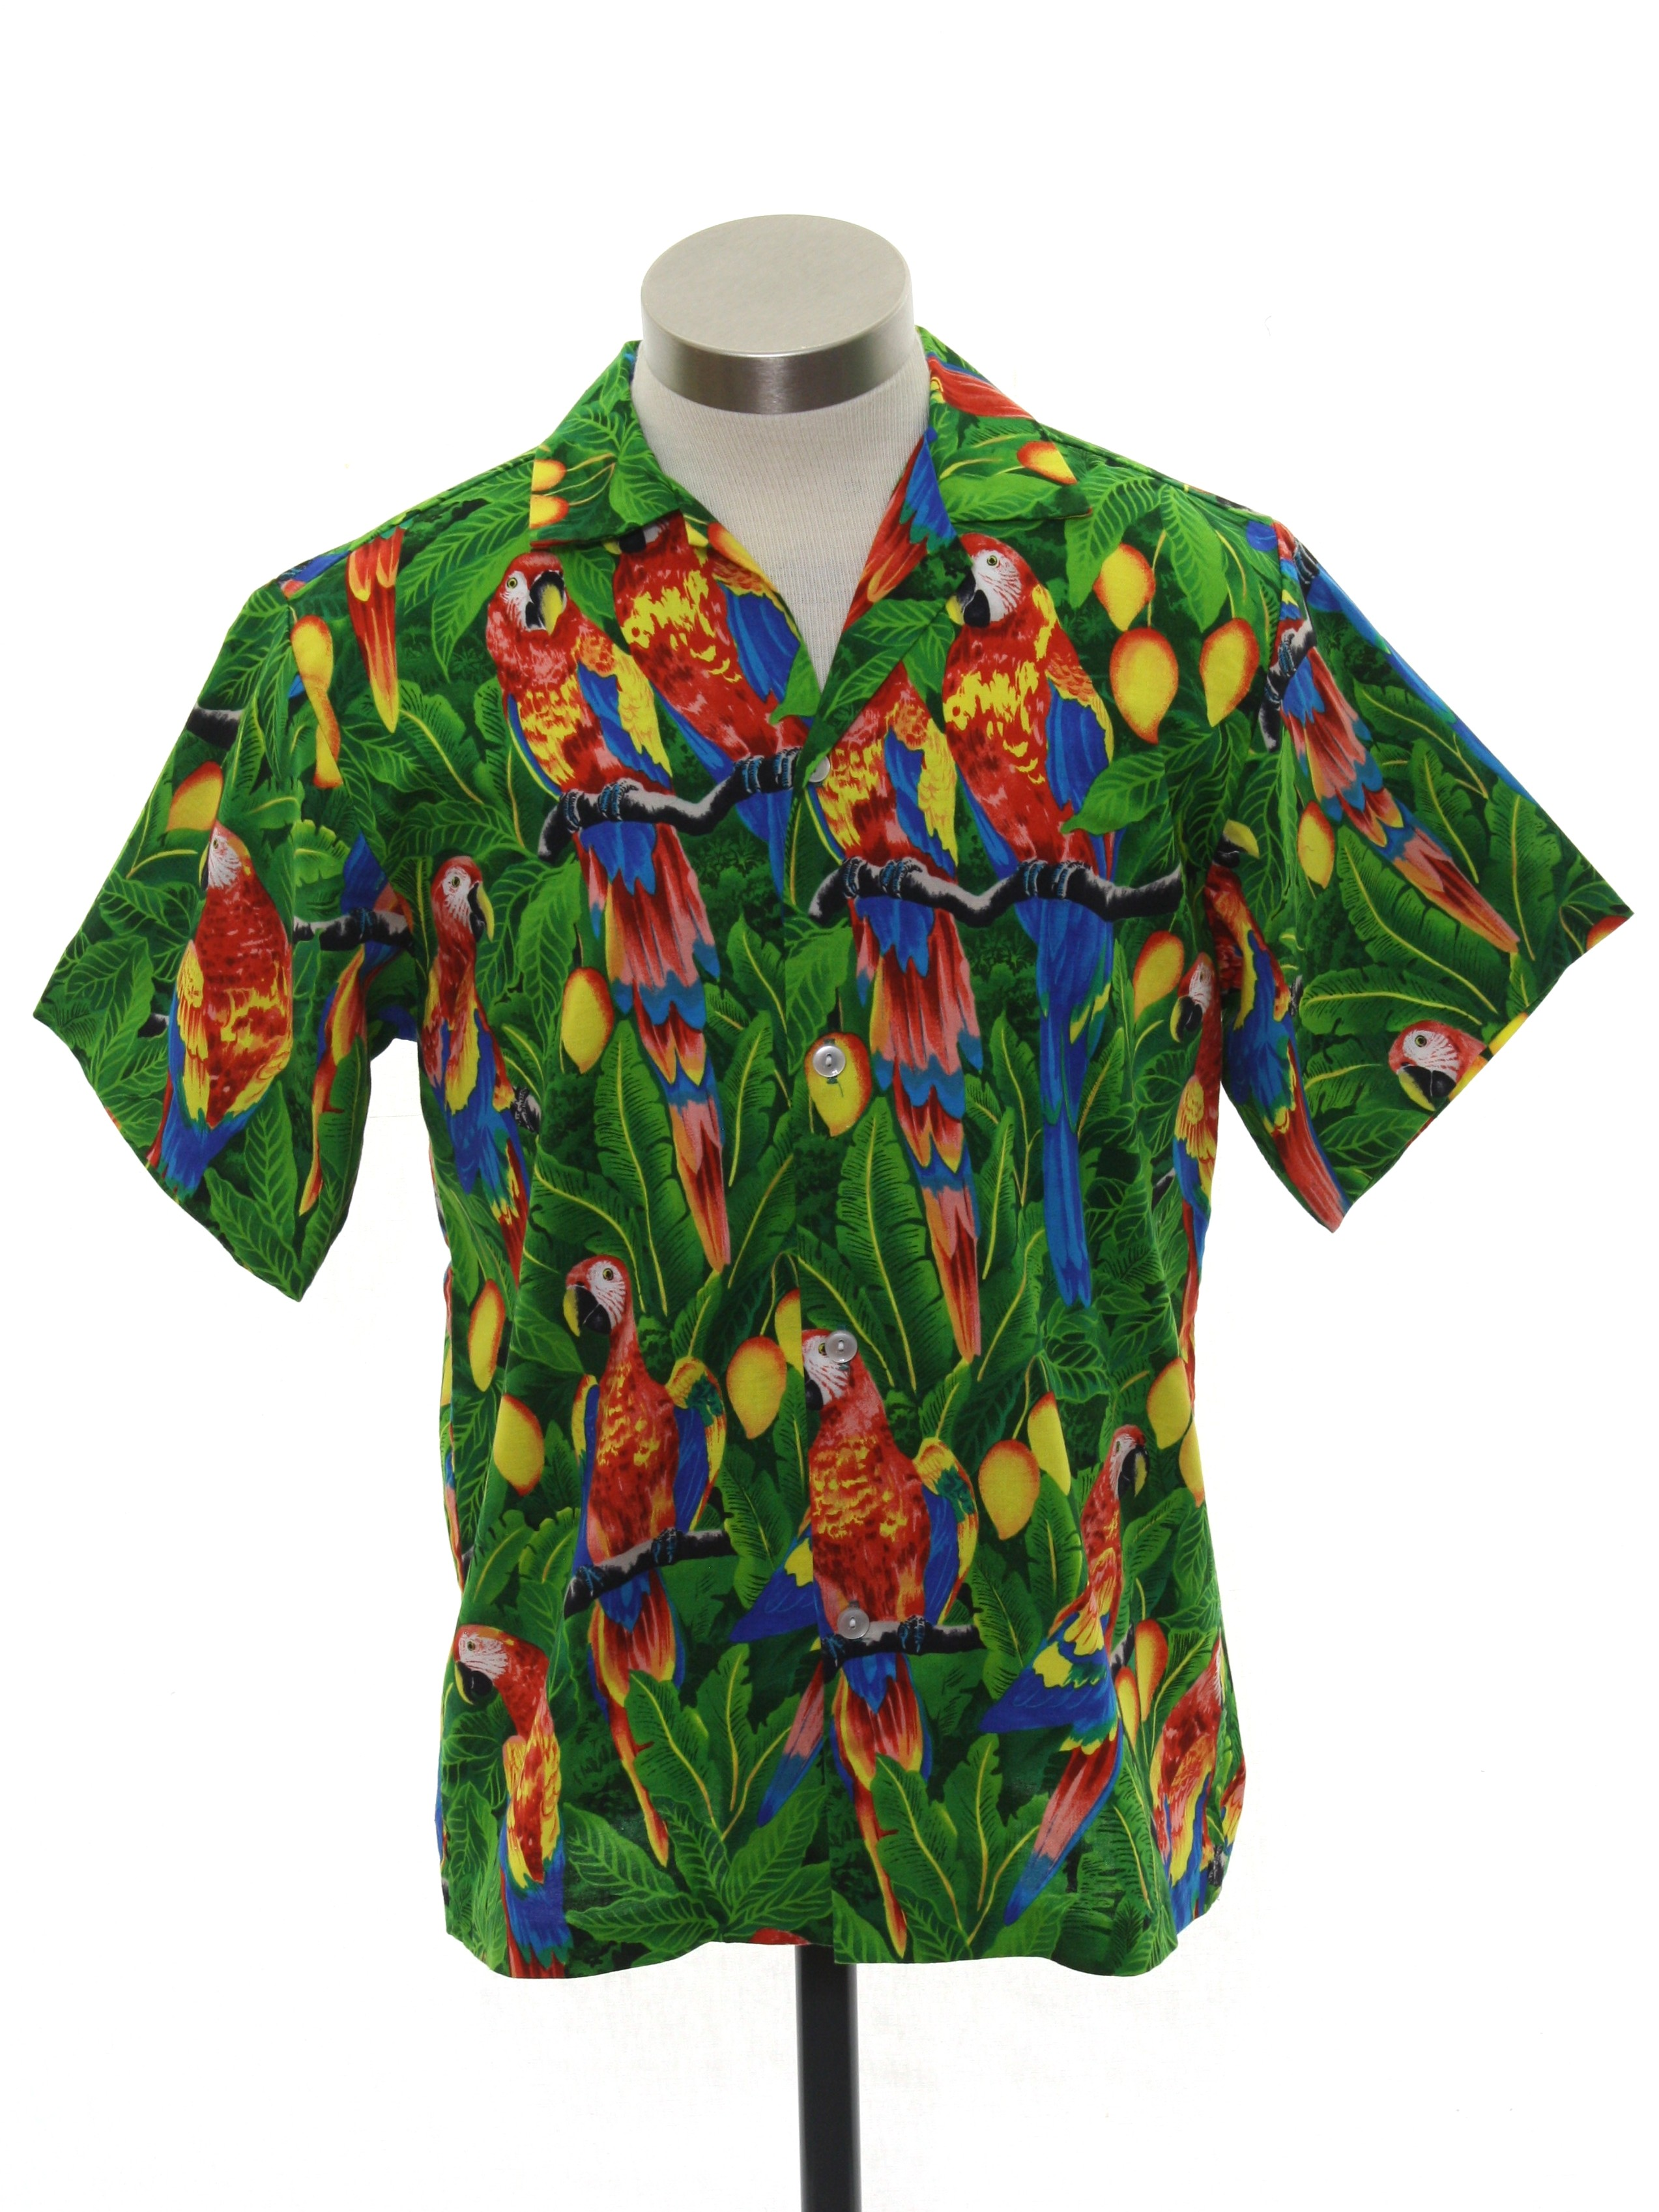 6007fb10d 80s Hawaiian Shirt (Hilo Hattie): 80s -Hilo Hattie- Mens green ...